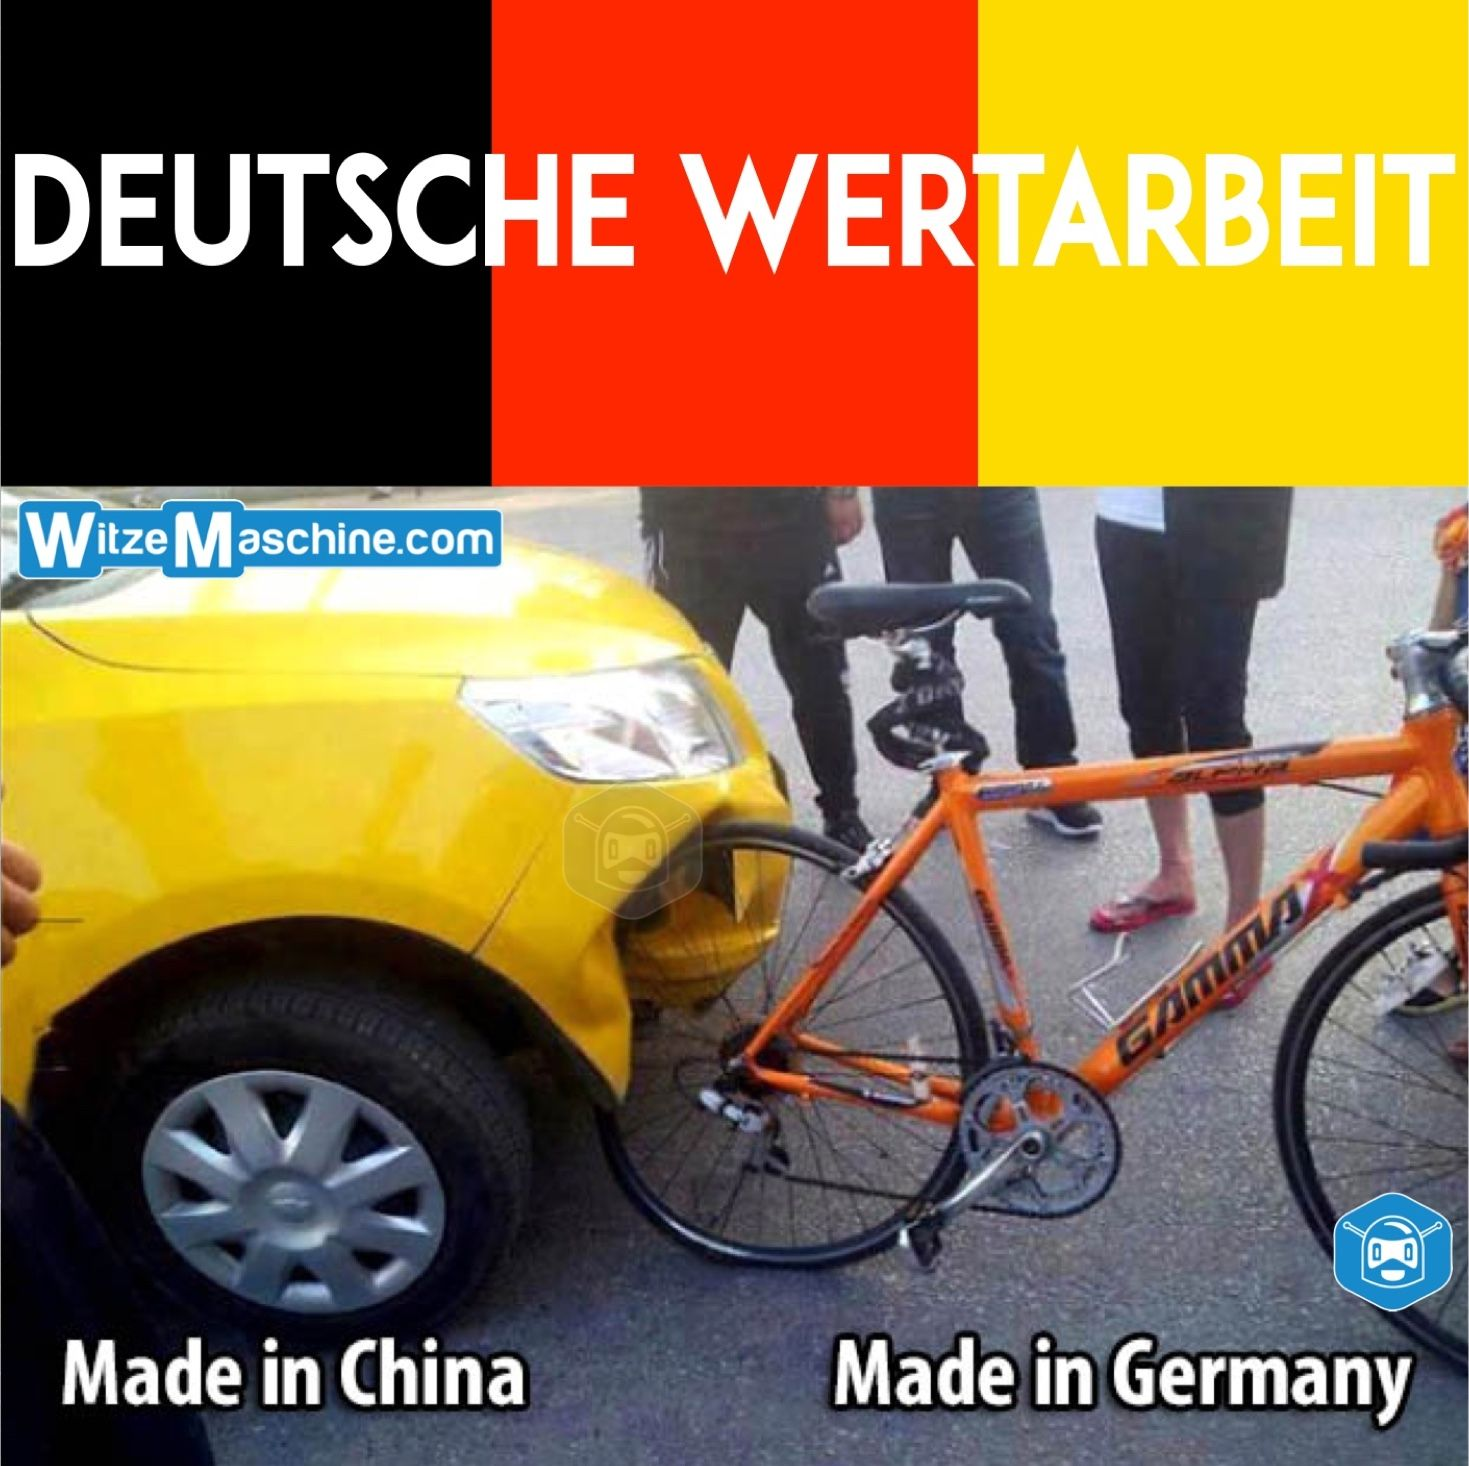 Made In China Vs Made In Germany Qualitat Chinesenwitze